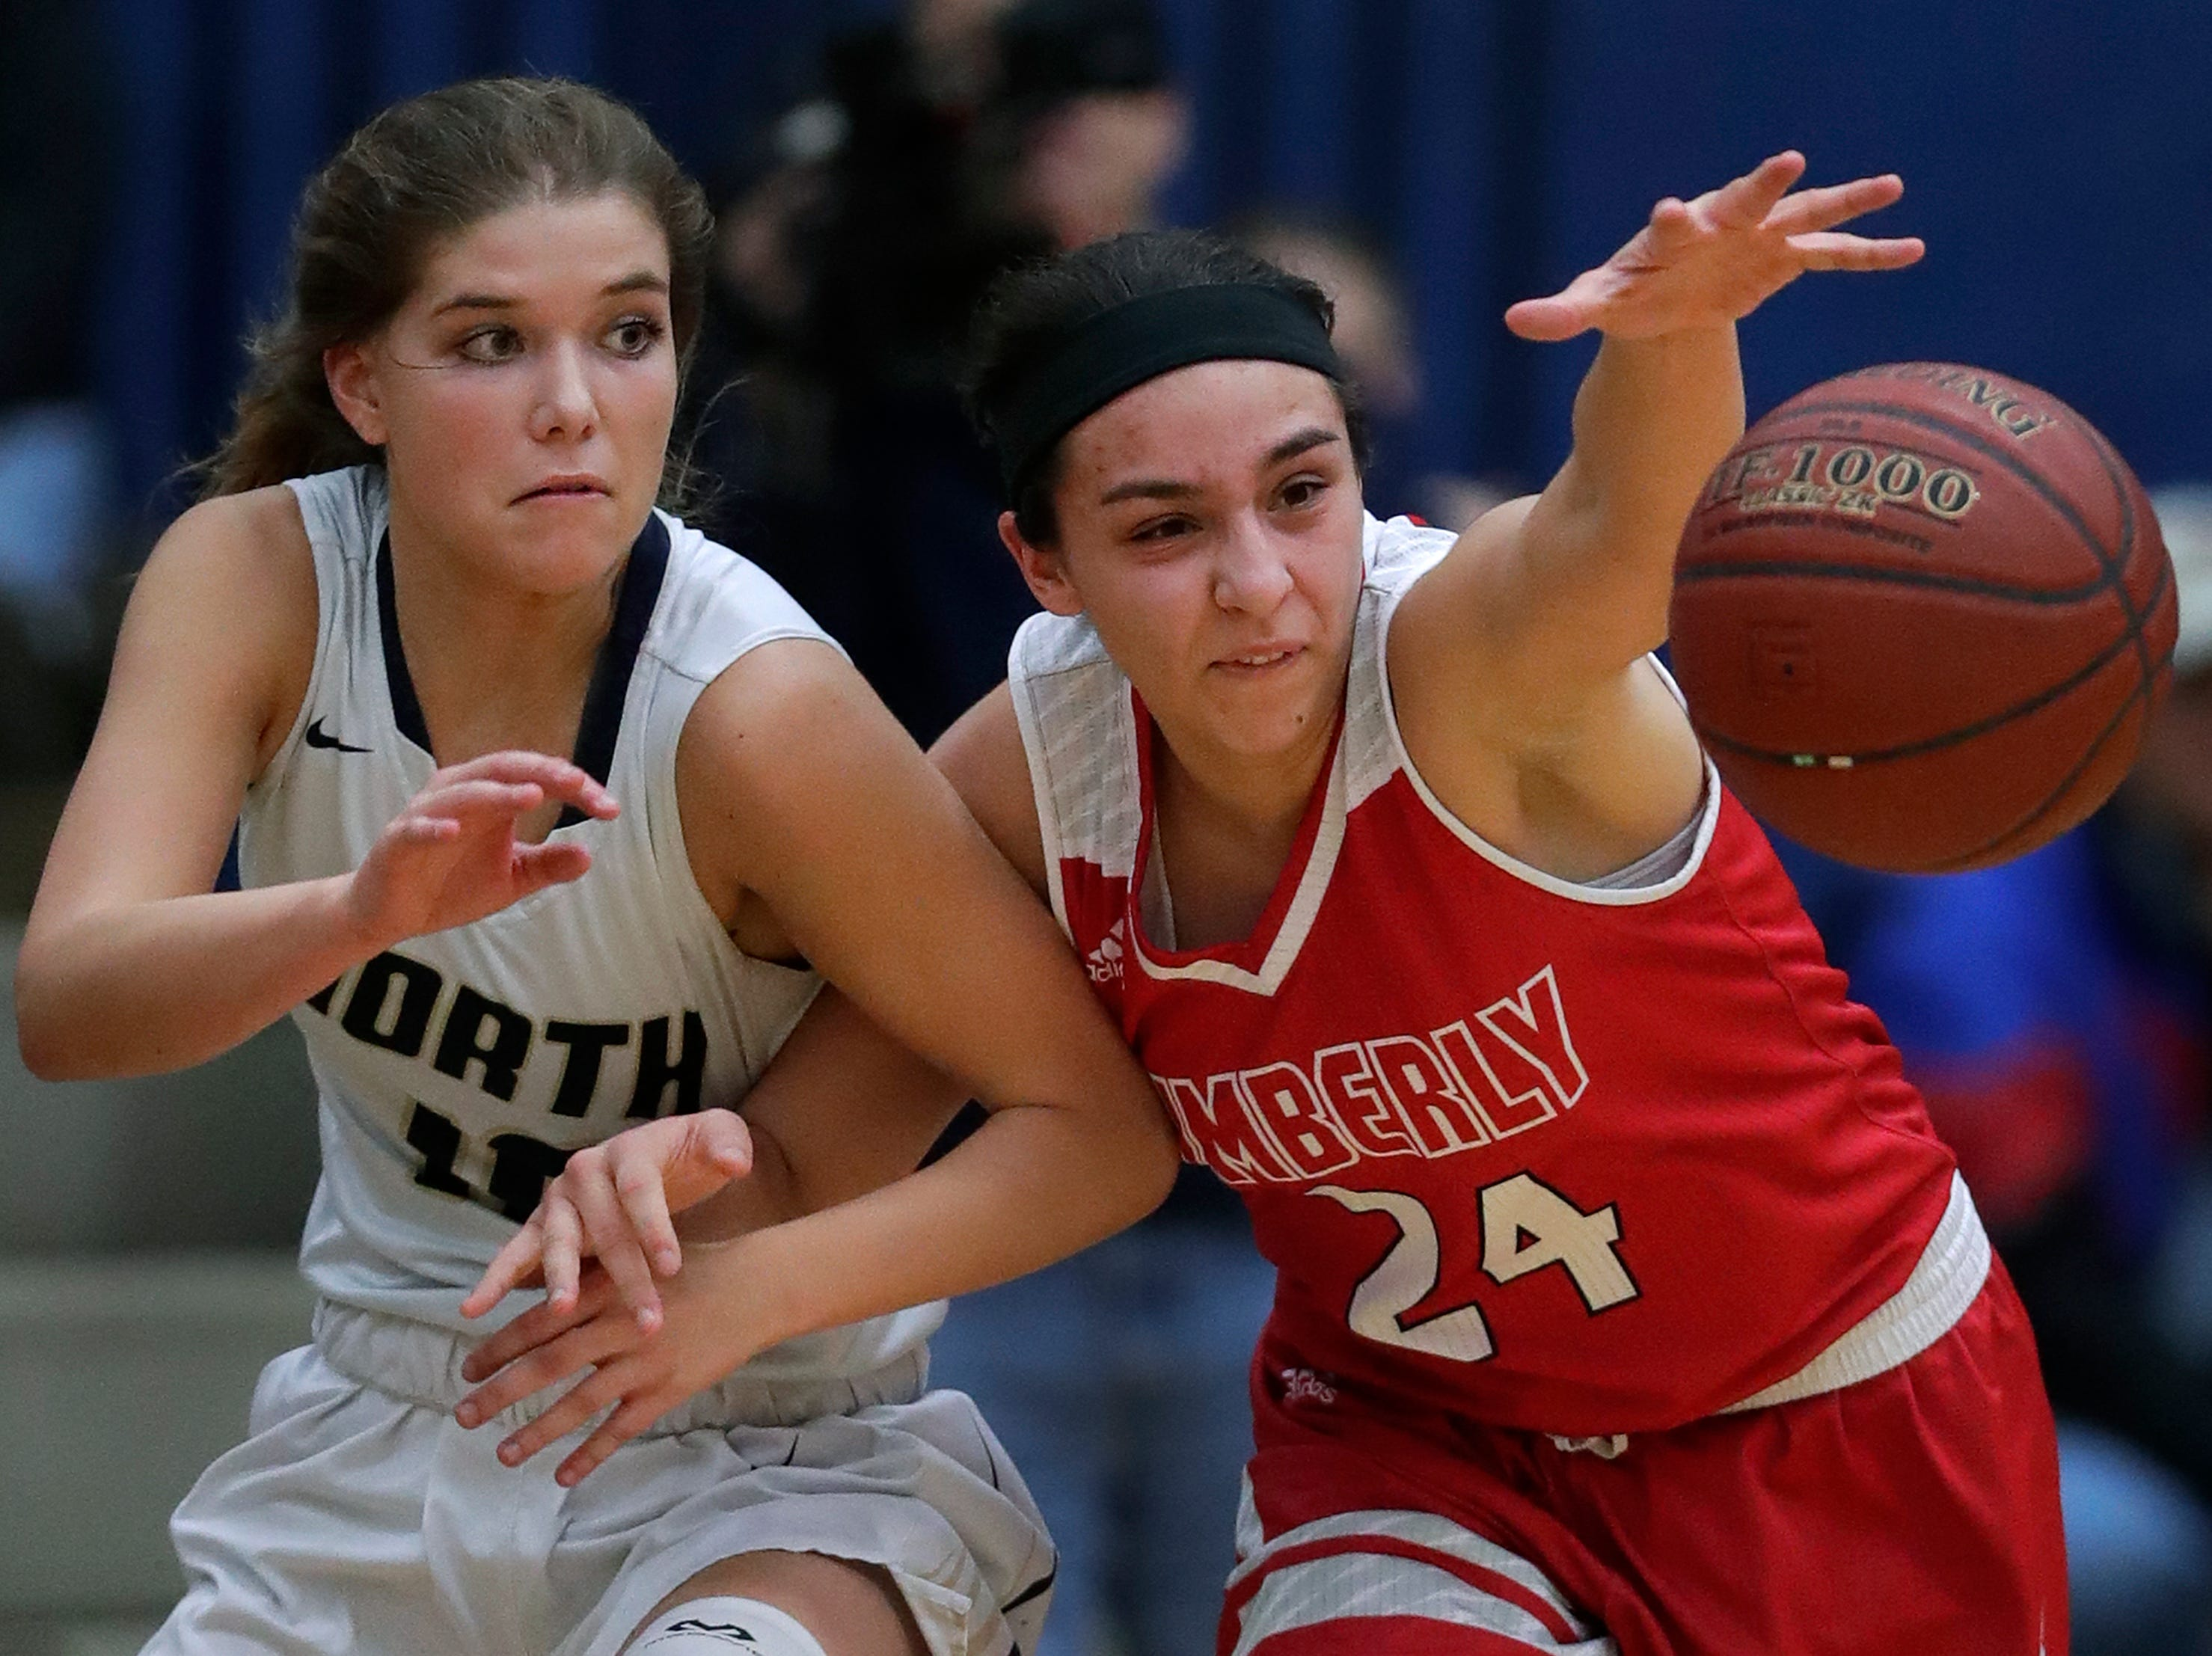 Appleton North High School's Anna Laux (10) and Kimberly High School's Shea Dechant (24) try to gain control of the ball during their girls basketball game Tuesday, January 8, 2019, in Appleton, Wis. Dan Powers/USA TODAY NETWORK-Wisconsin